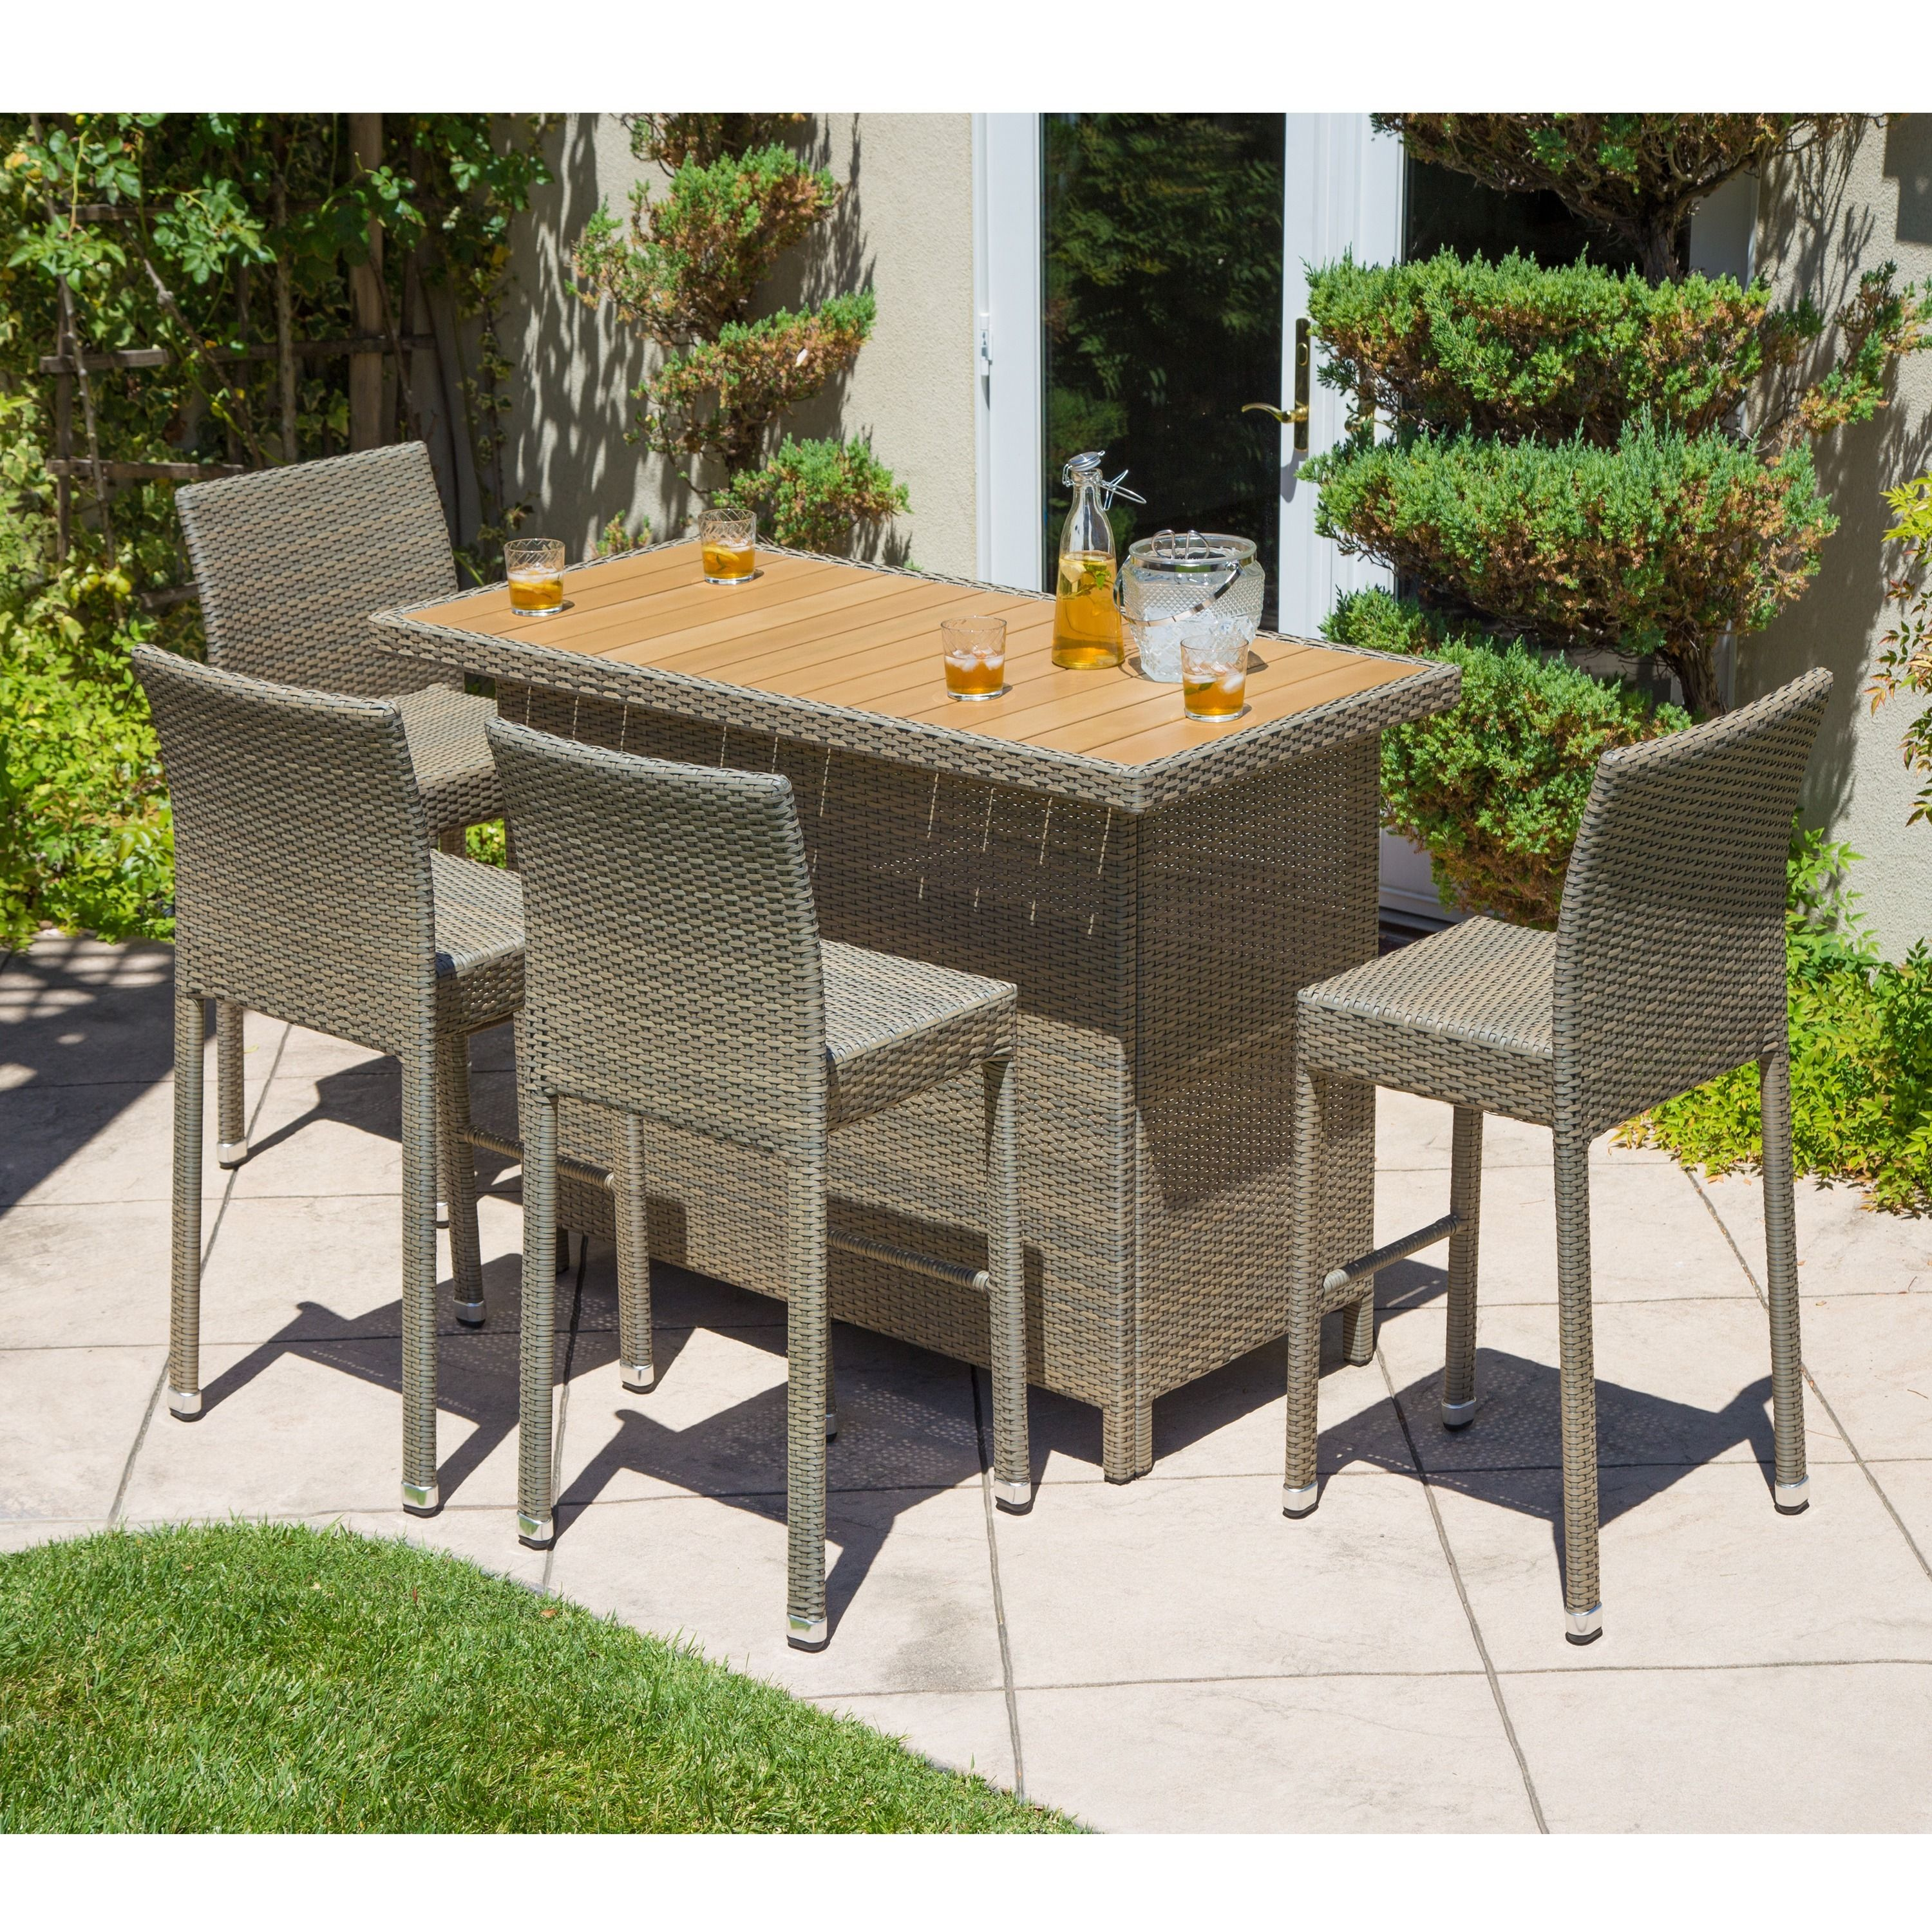 Pleasant This Outdoor Dining Set Features A Table With Shelf Storage Download Free Architecture Designs Rallybritishbridgeorg